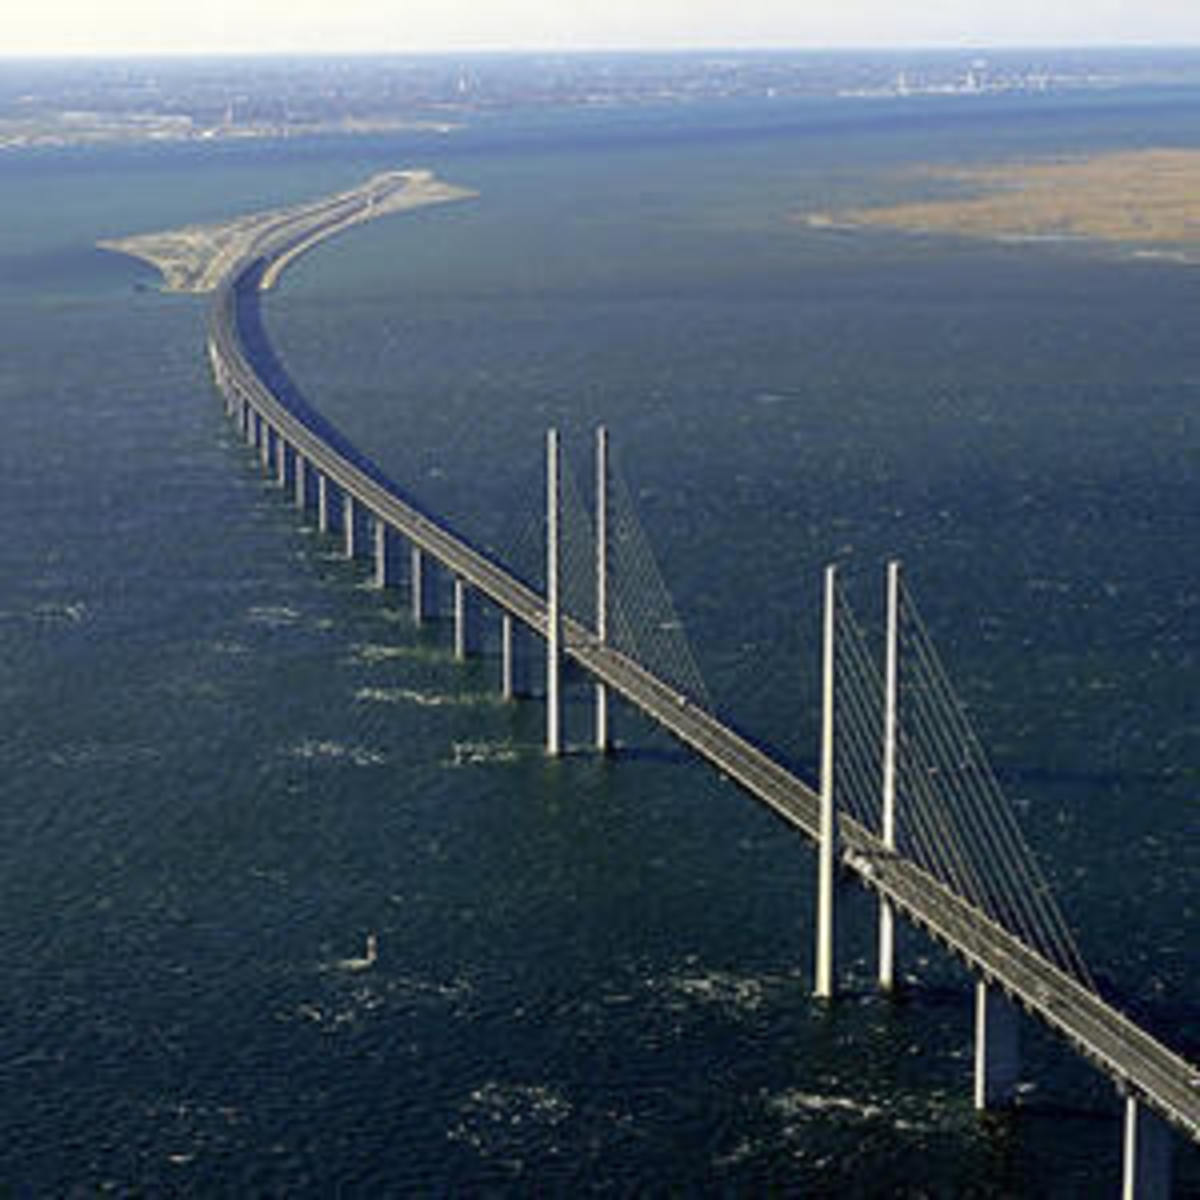 The Oresund Bridge.